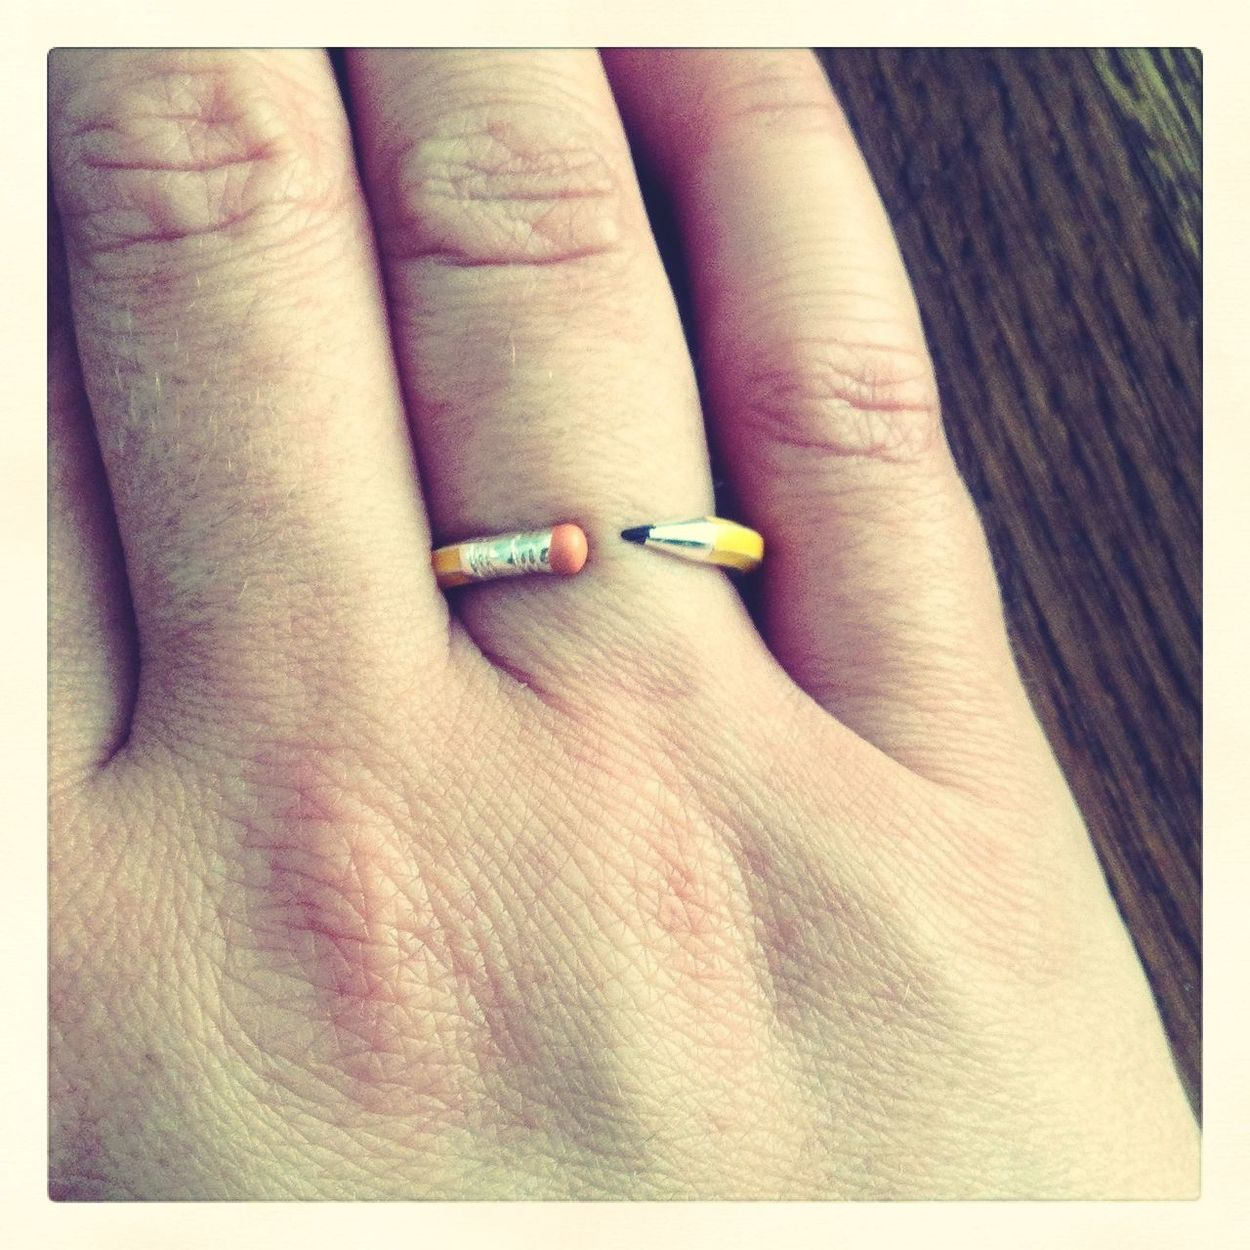 new pencil ring! Dalston Summer Salon  Hanging Out